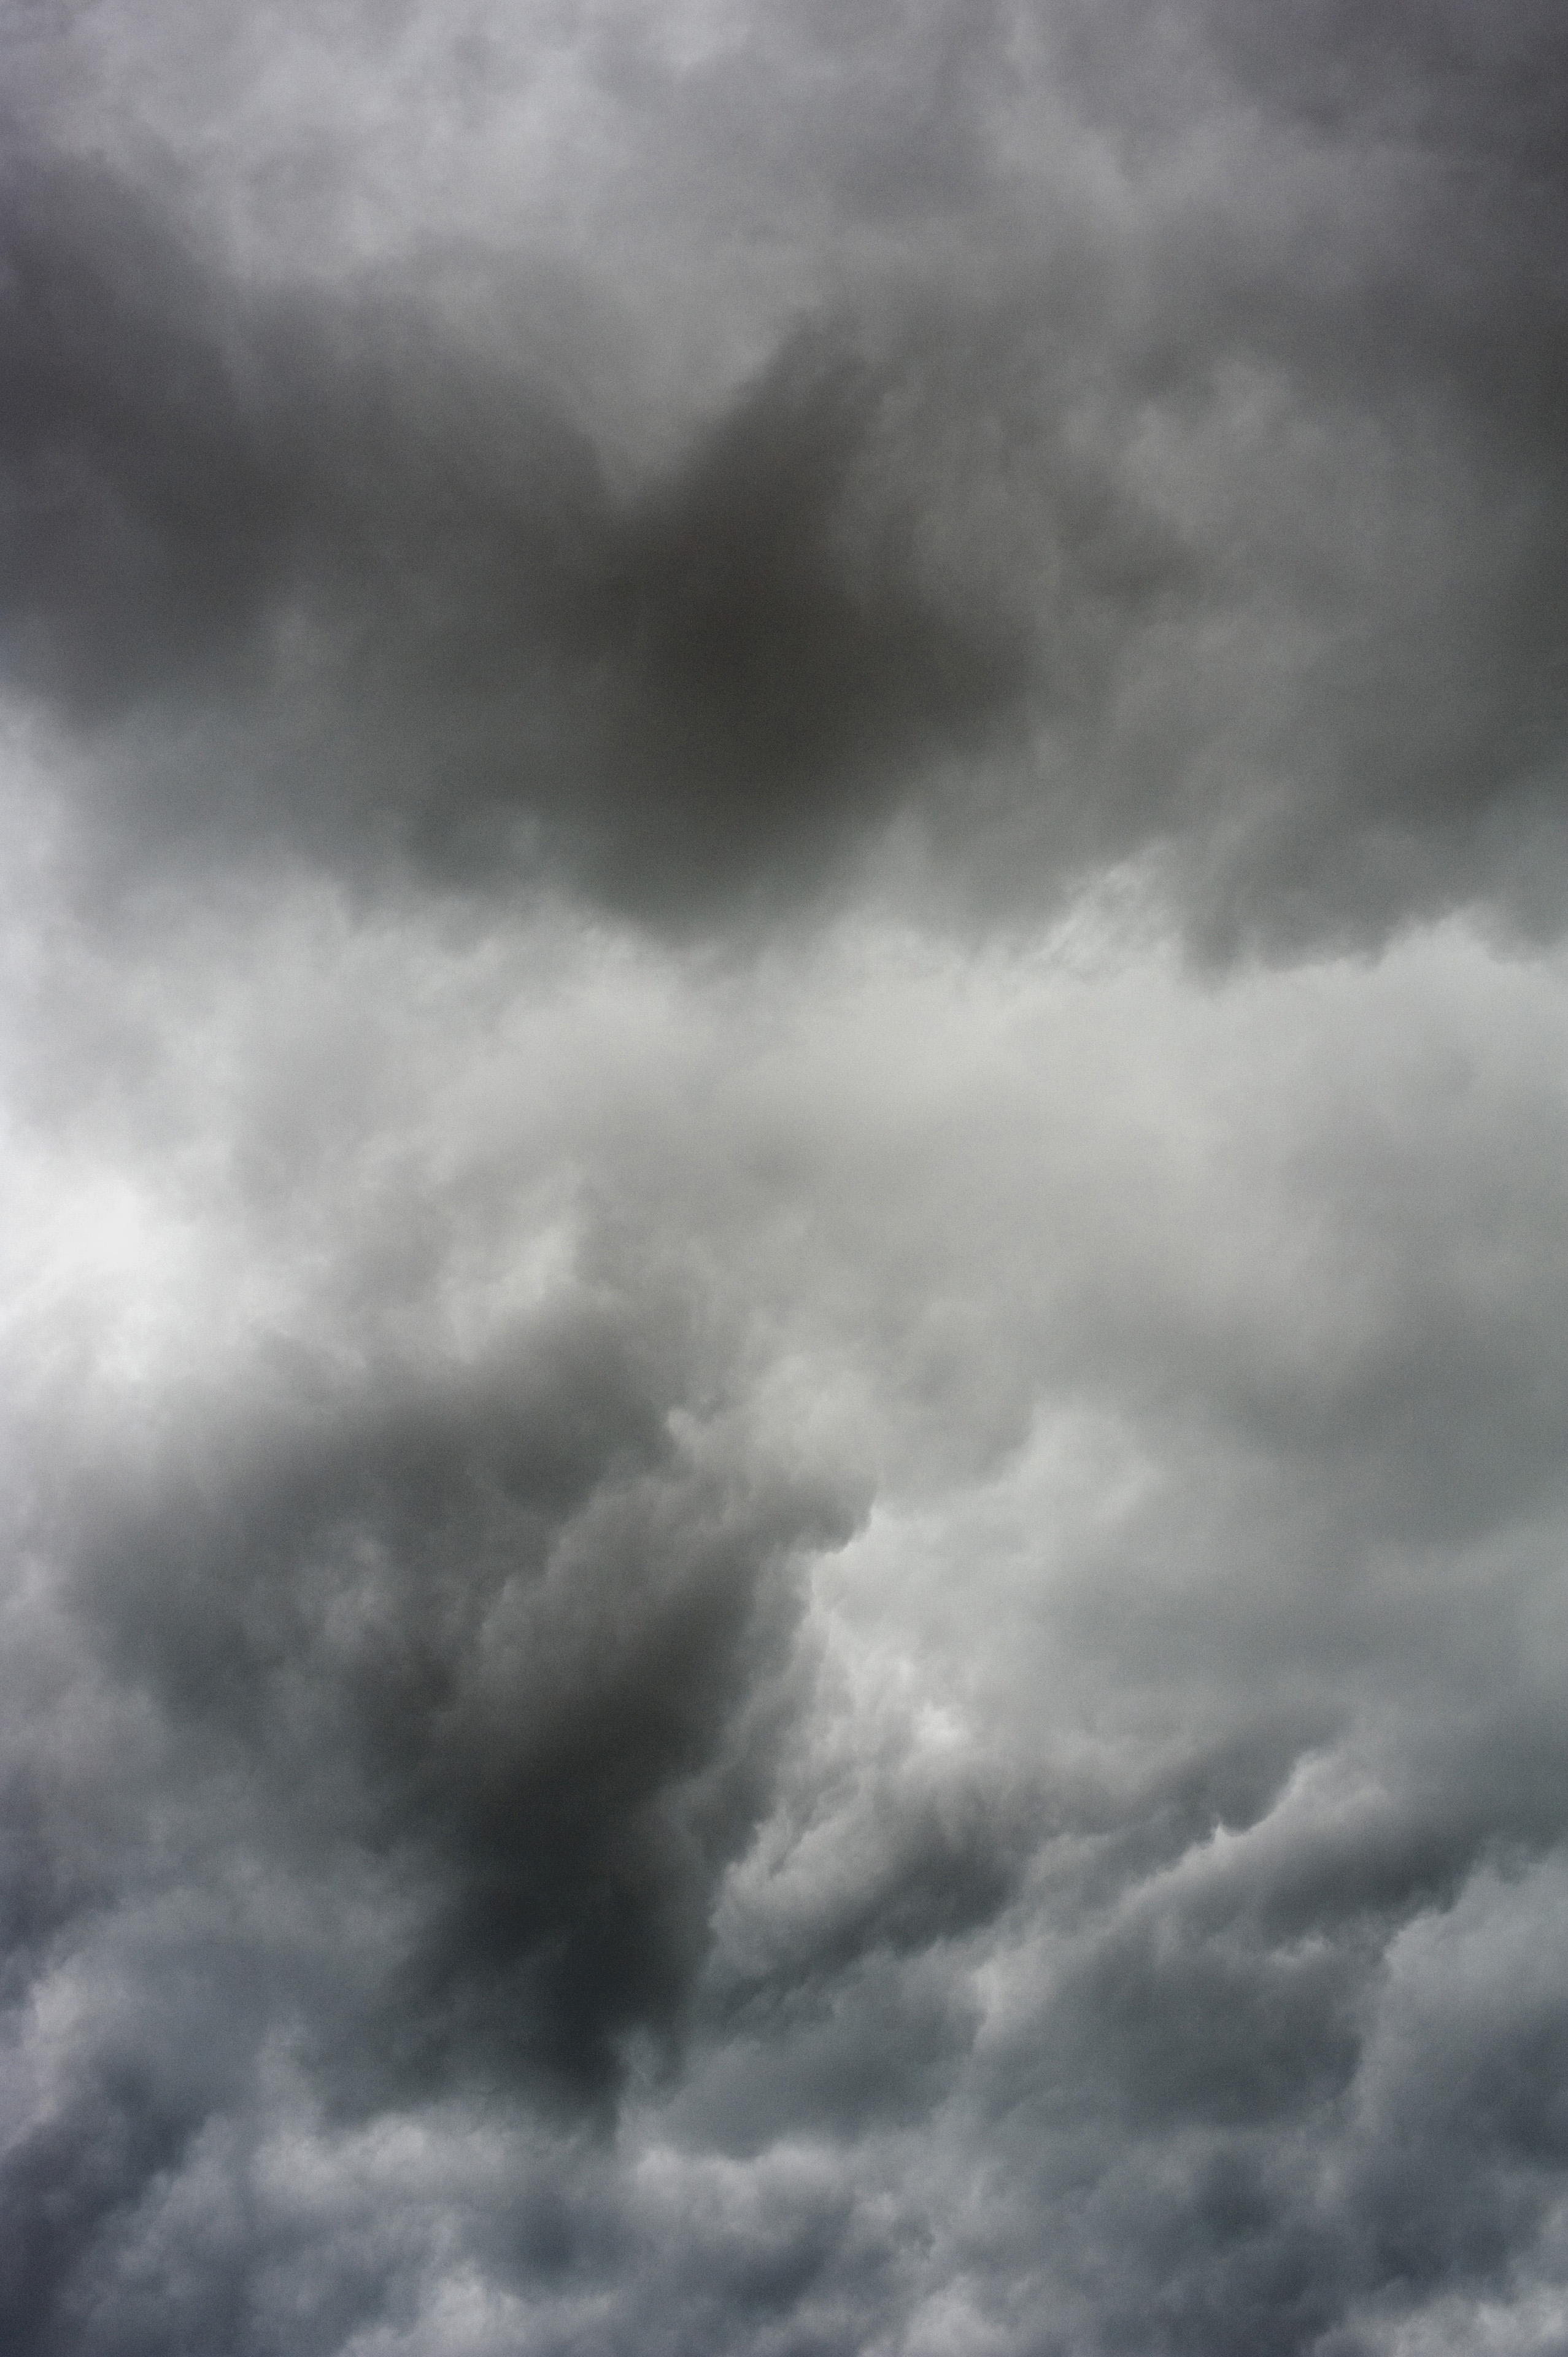 Overcast gray sky with heavy dark clouds, forecasting stormy weather